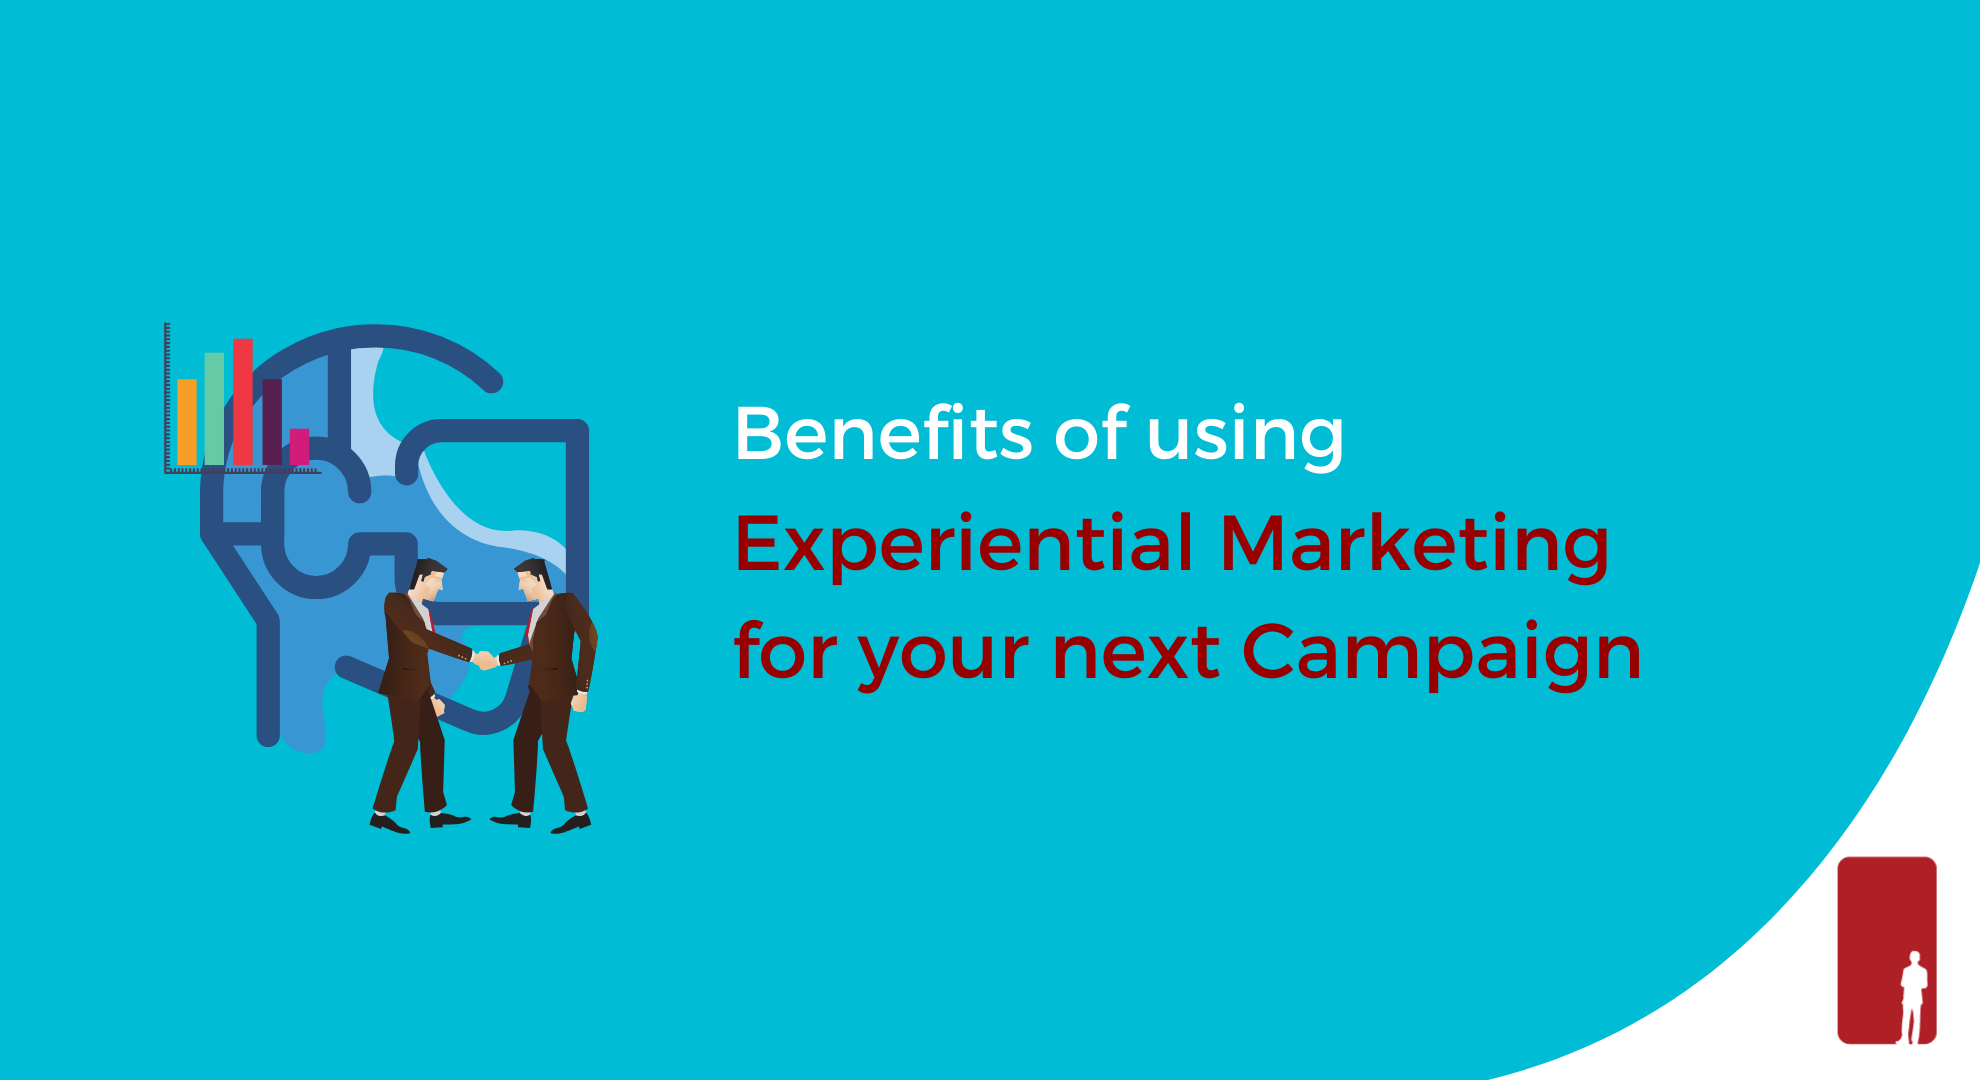 Benefits of using Experiential Marketing for your next campaign